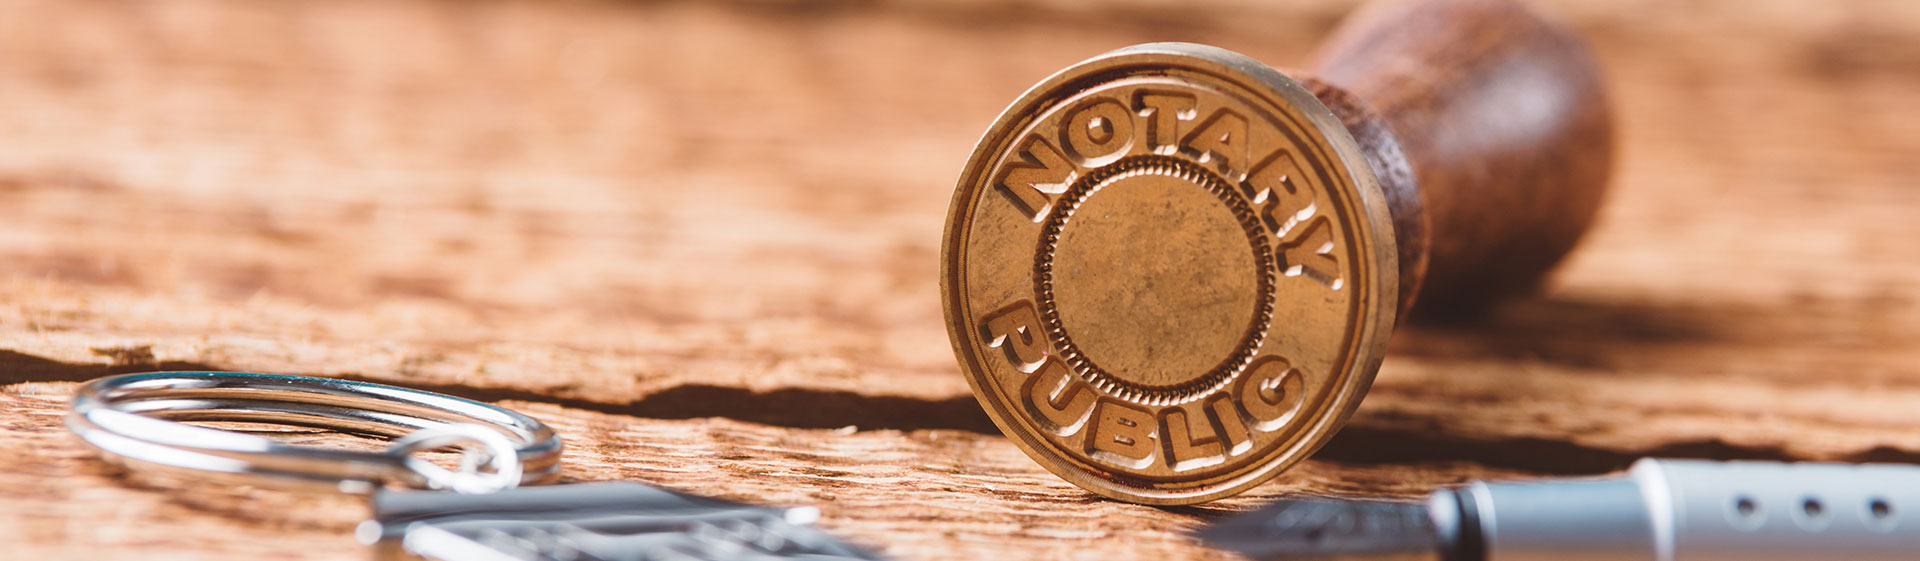 notary public sutton coldfield